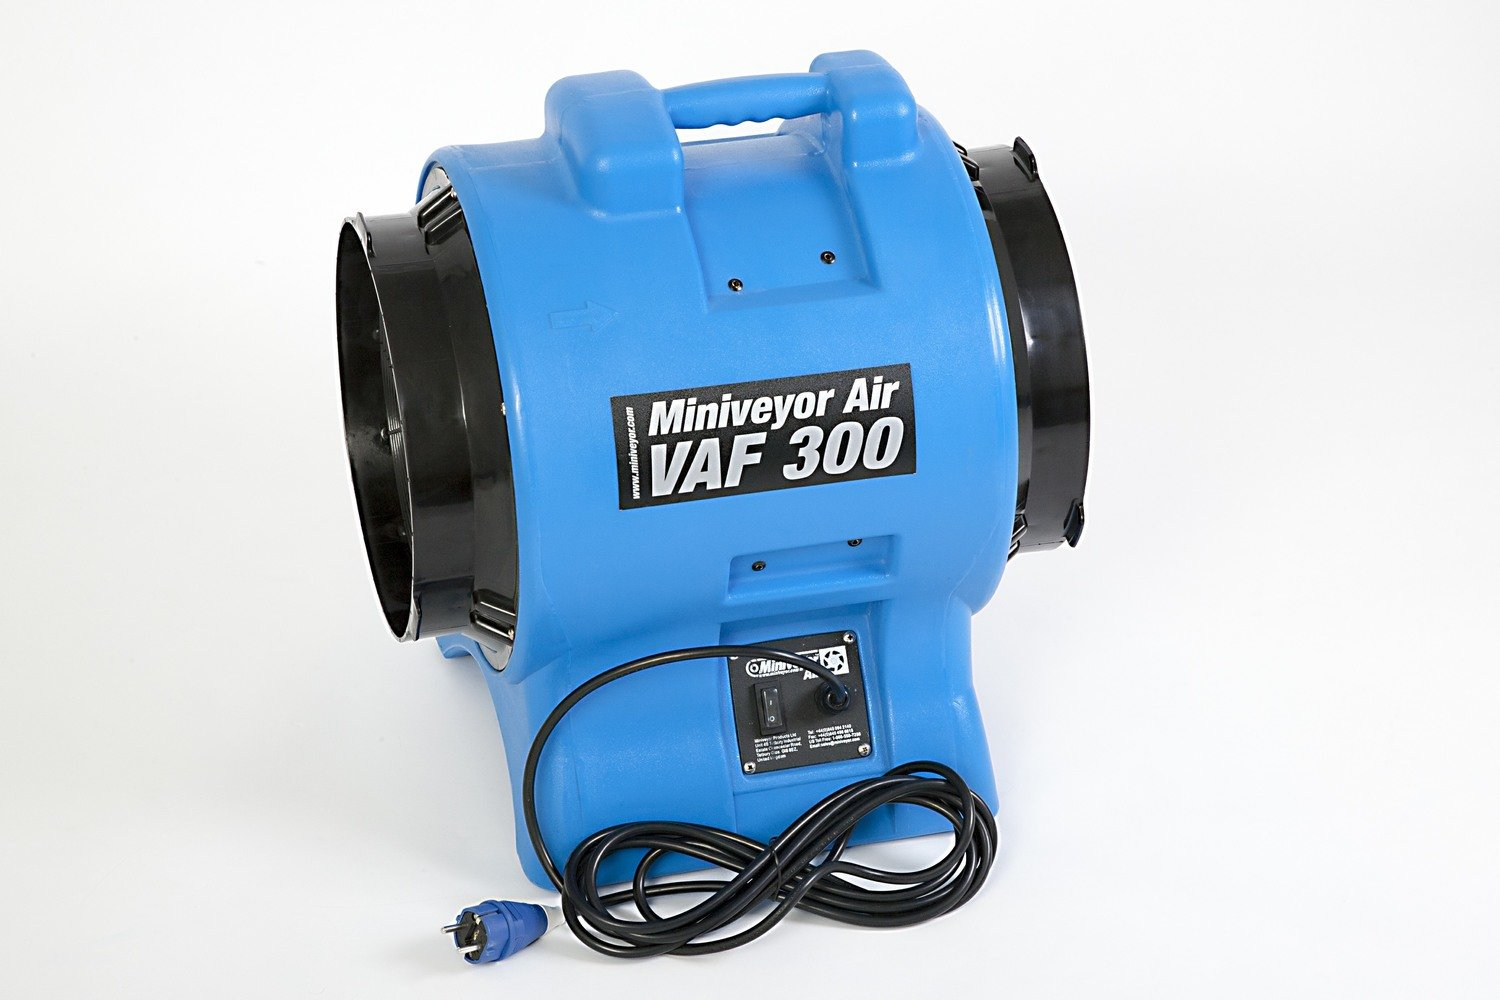 "Miniveyor Air VAF-300 230V (EU) 12"" Portable Fume Extractor - 3400 m³/hour (2000 CFM)"